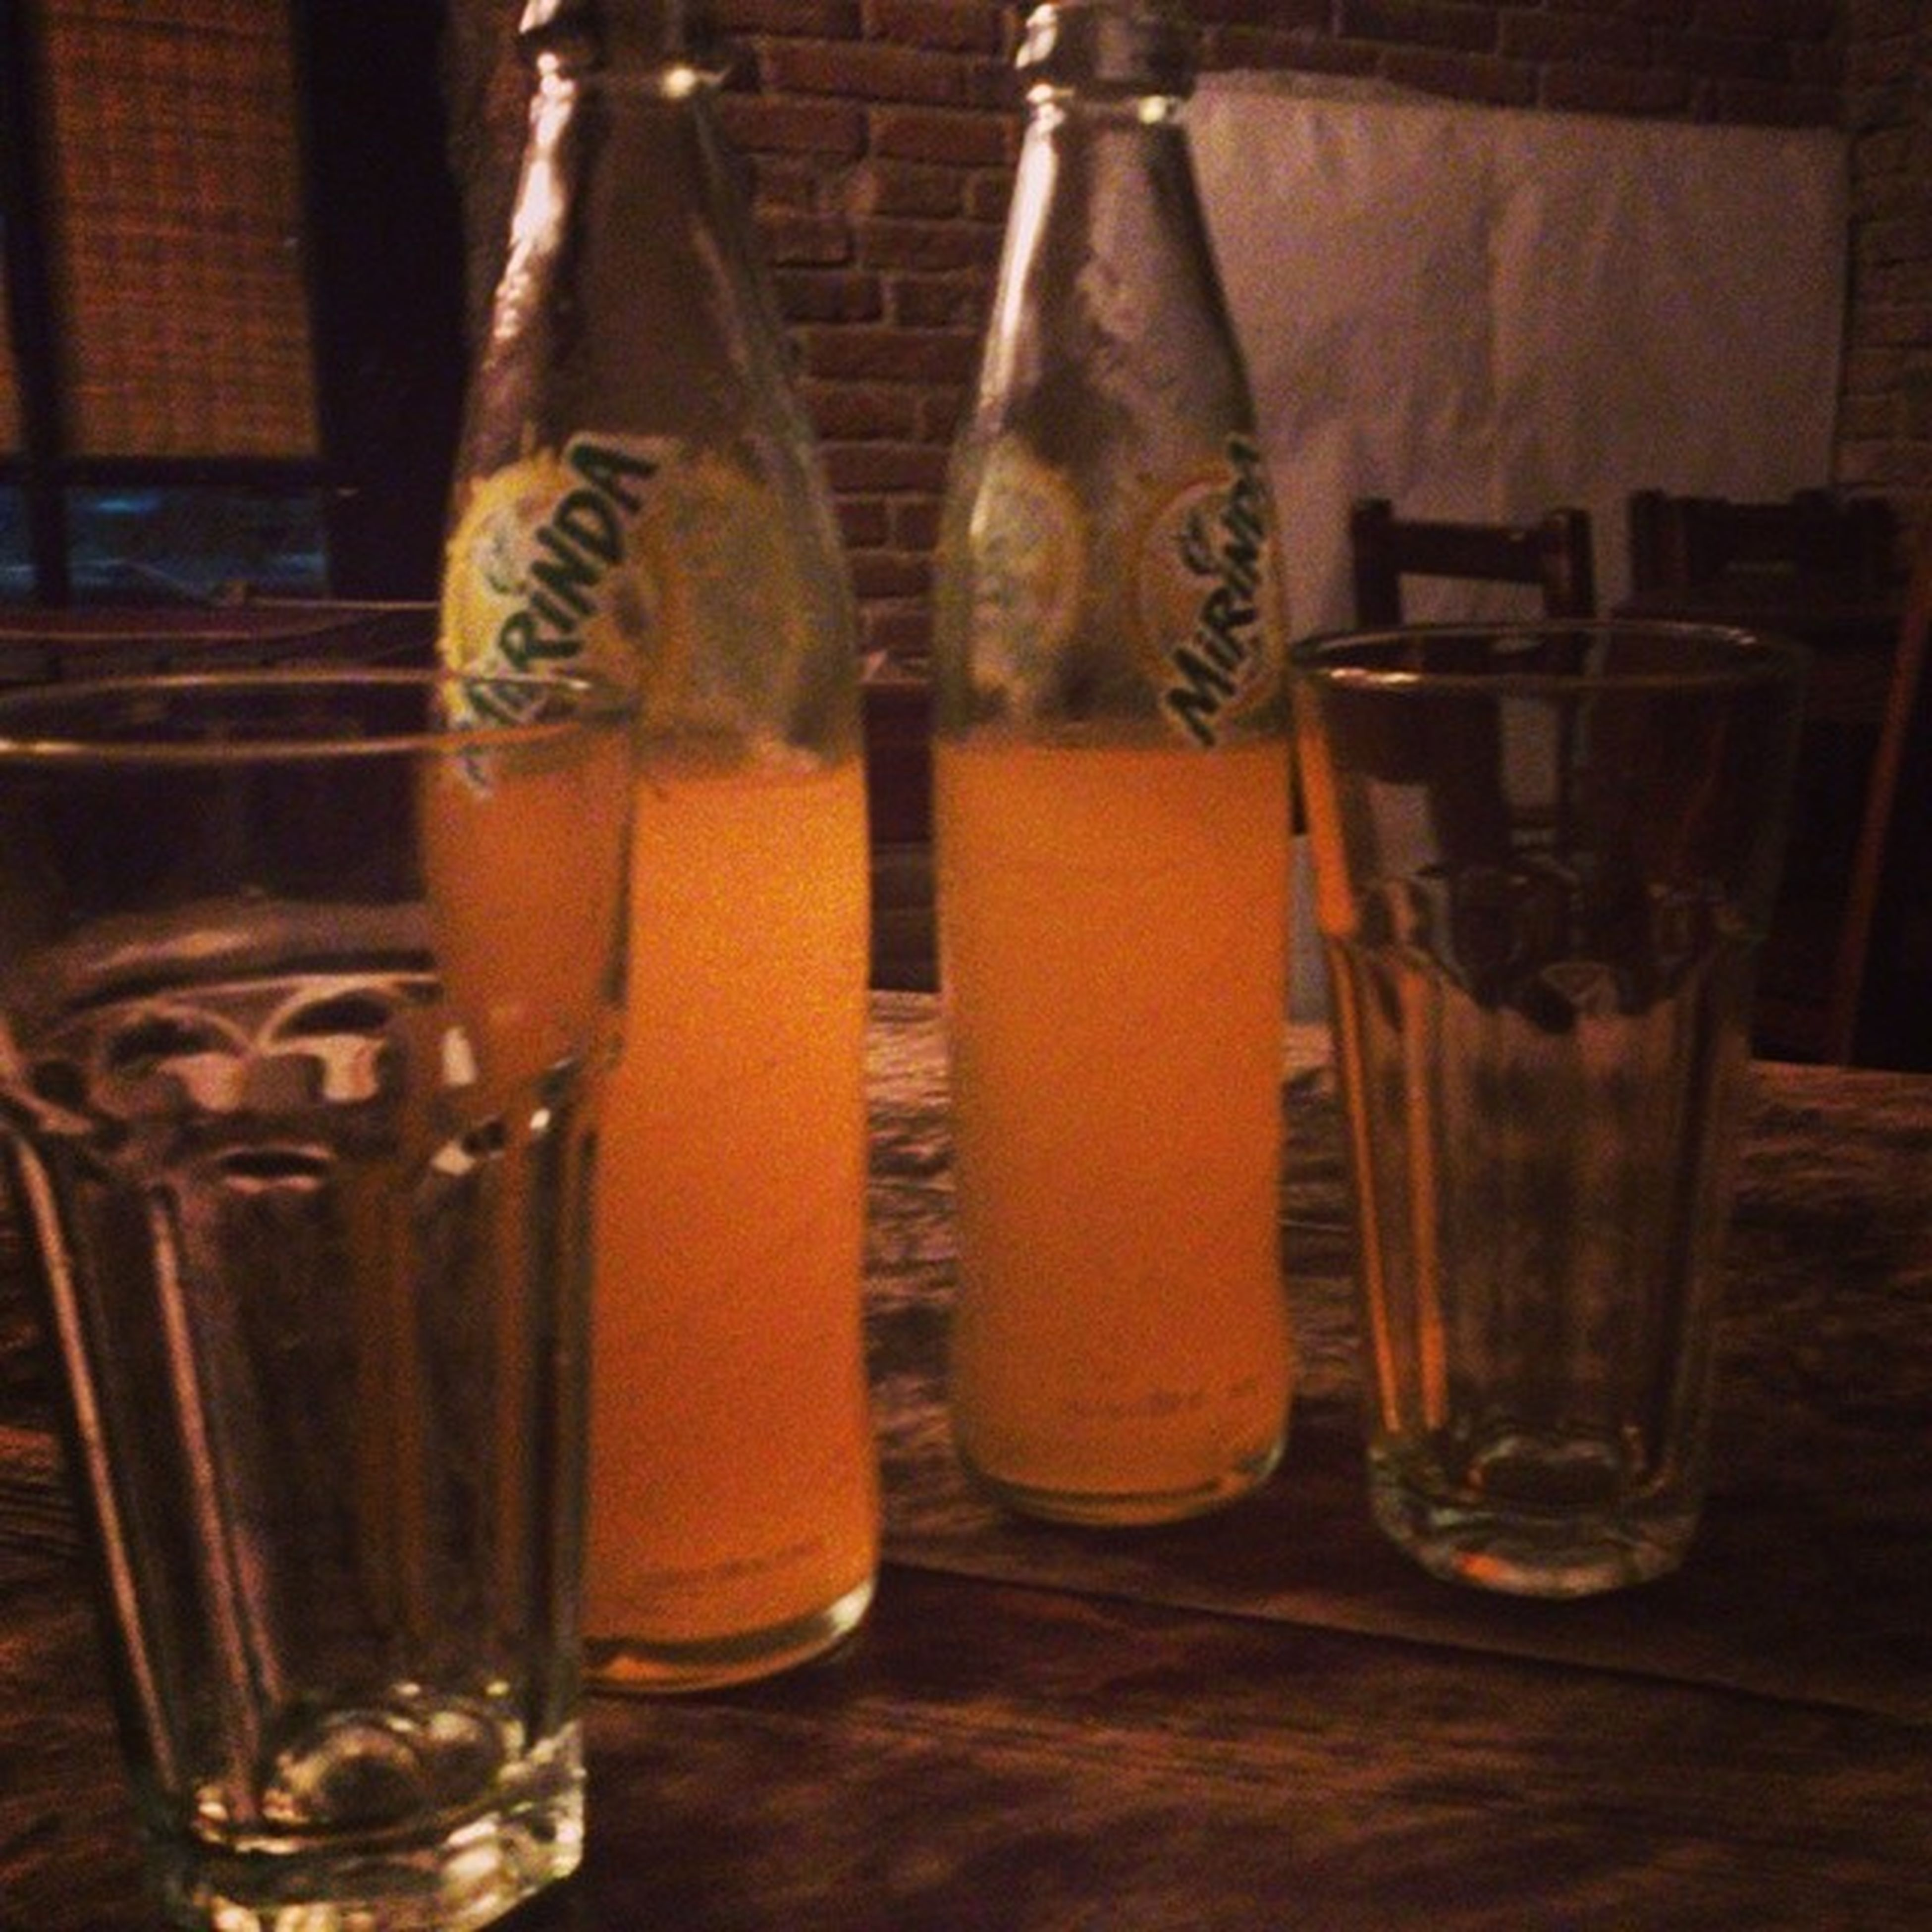 drink, food and drink, drinking glass, refreshment, table, indoors, still life, alcohol, freshness, glass - material, close-up, transparent, restaurant, focus on foreground, glass, beer glass, drinking straw, bottle, beer - alcohol, cocktail